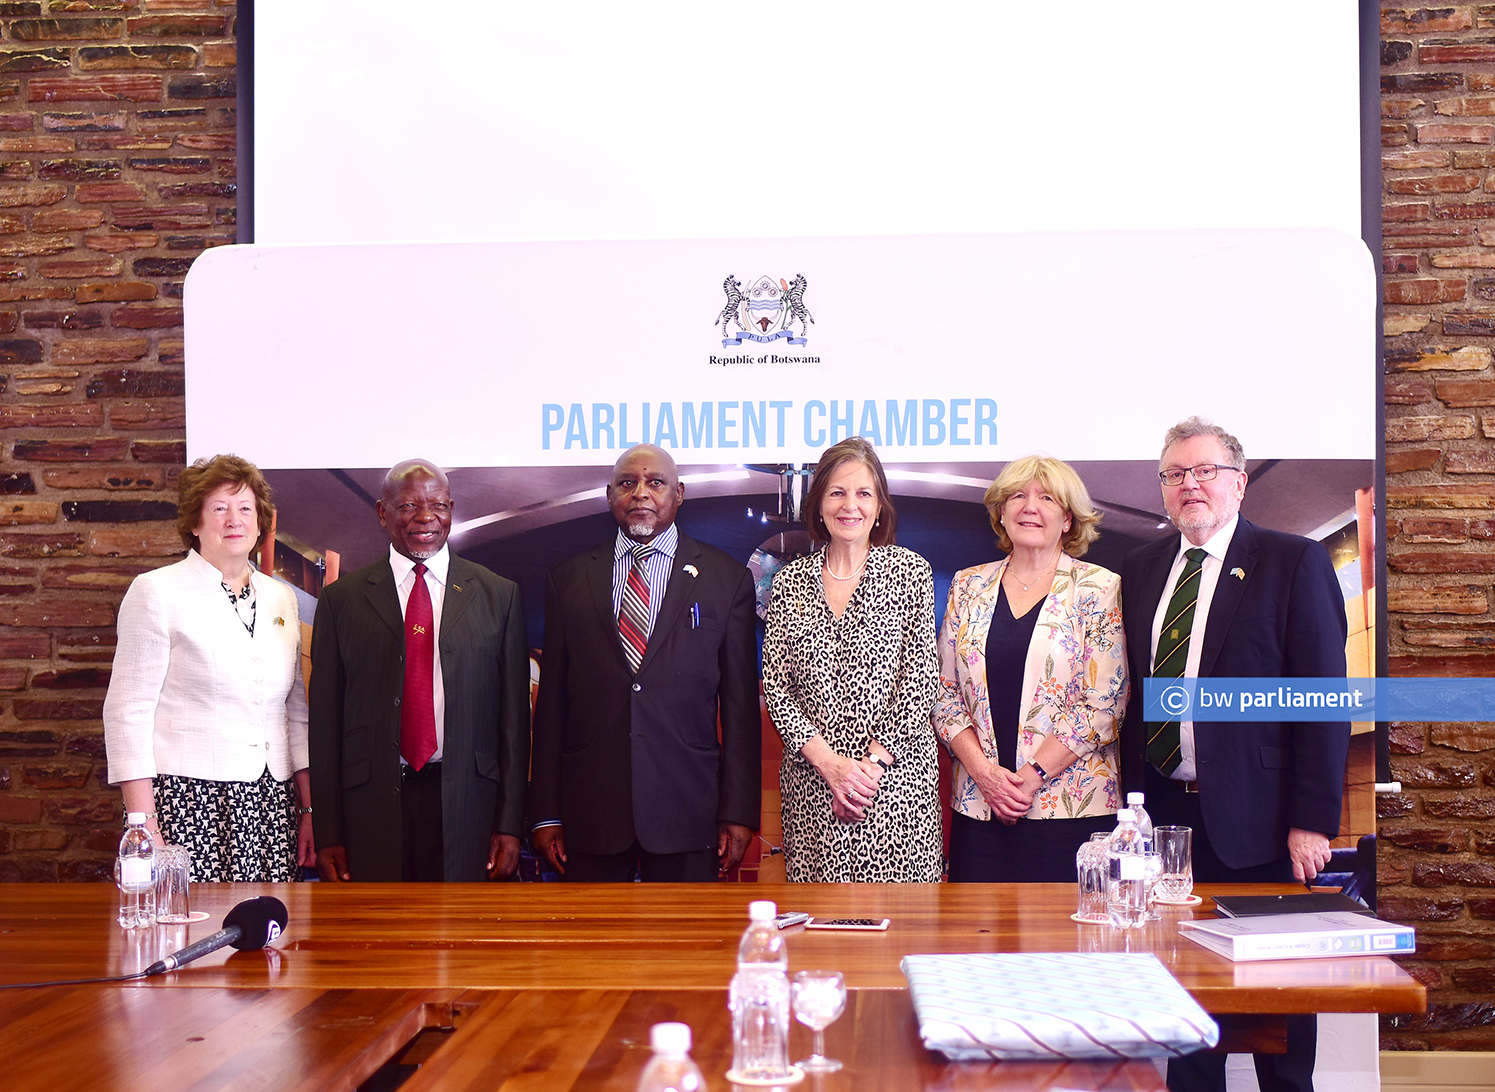 PARLIAMENT HOSTS MEMBERS OF THE CPA, UK BRANCH